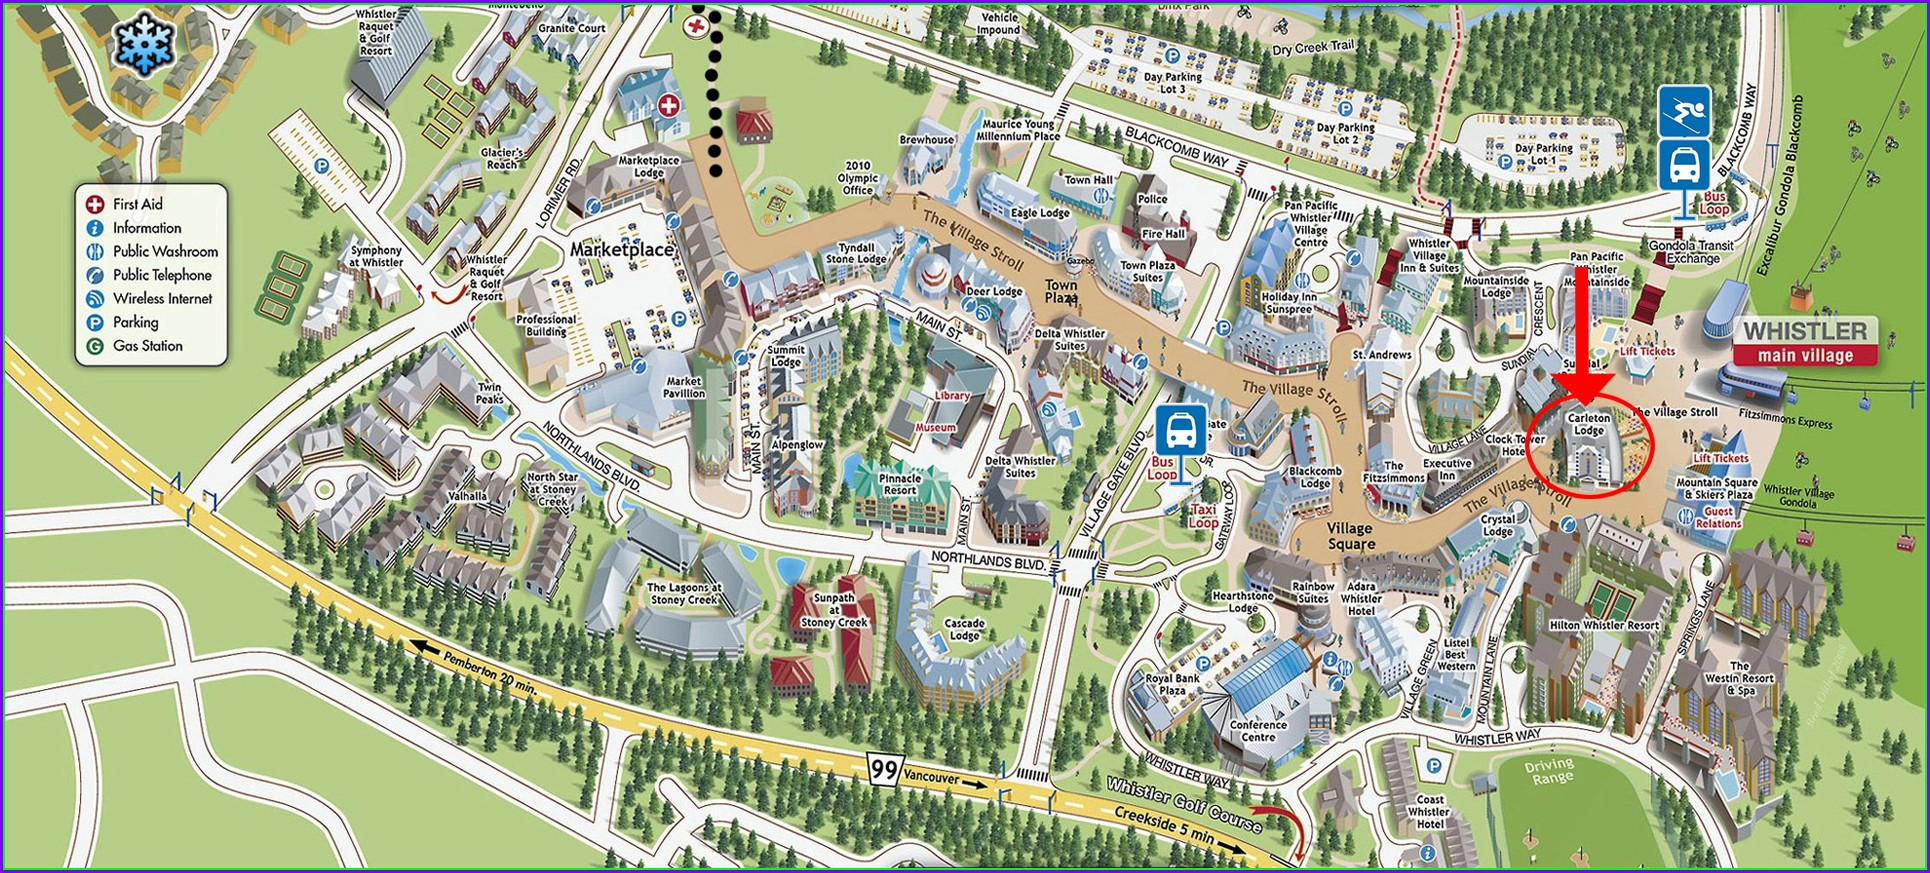 Whistler Blackcomb Village Map